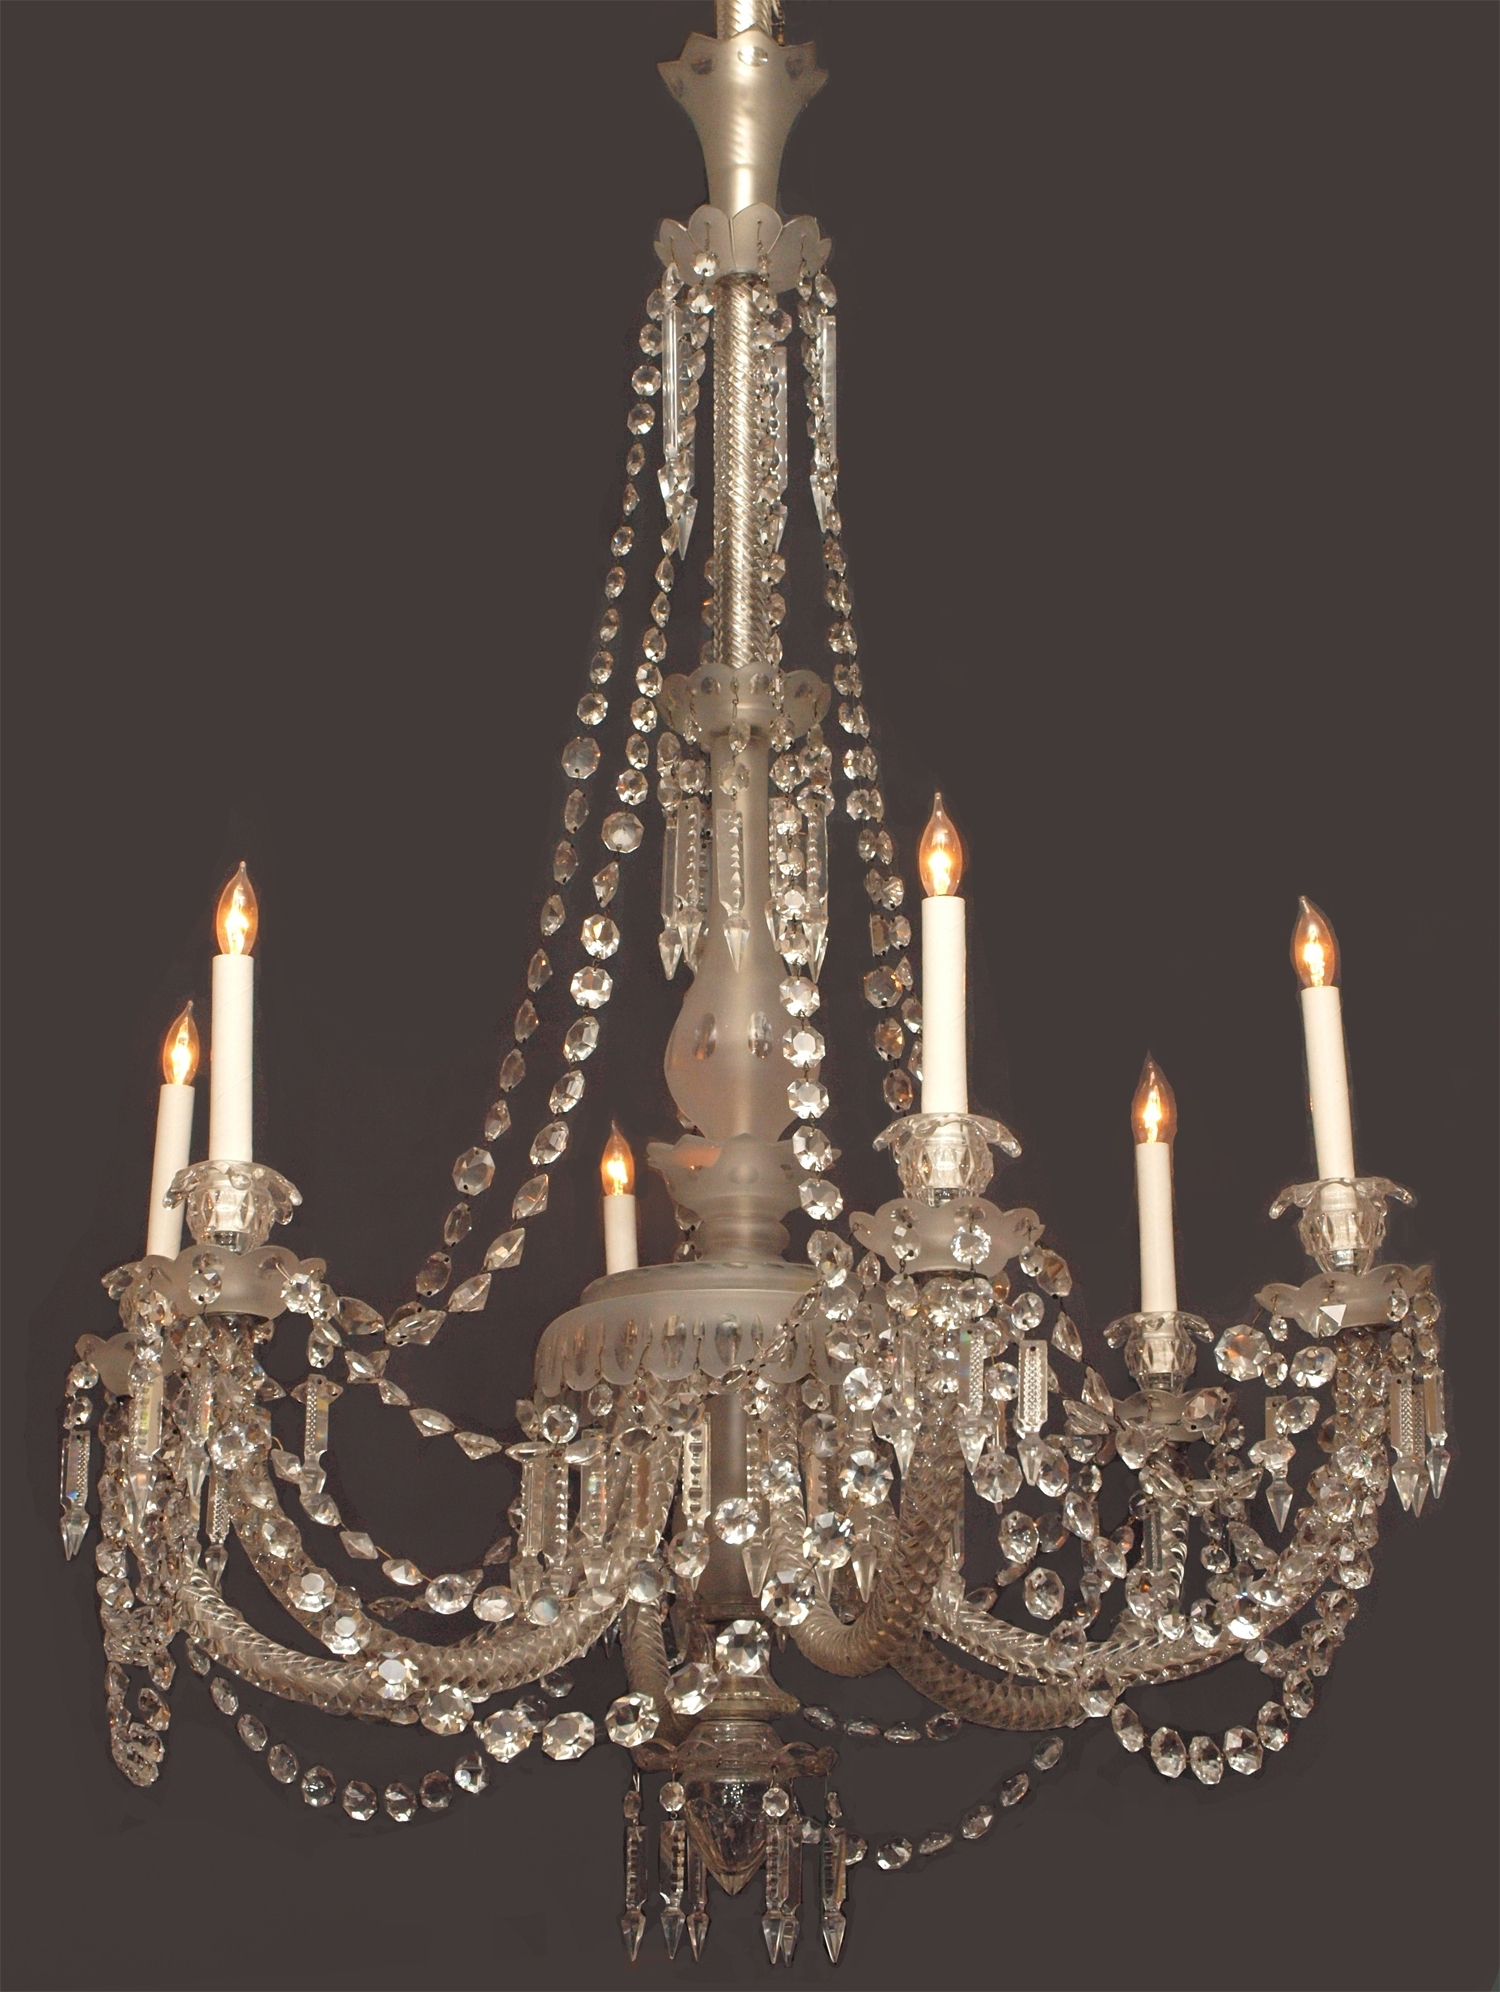 Antique English 19Th Century Gasolier Fine Lead Crystal Chandelier Intended For Widely Used Lead Crystal Chandelier (View 2 of 15)